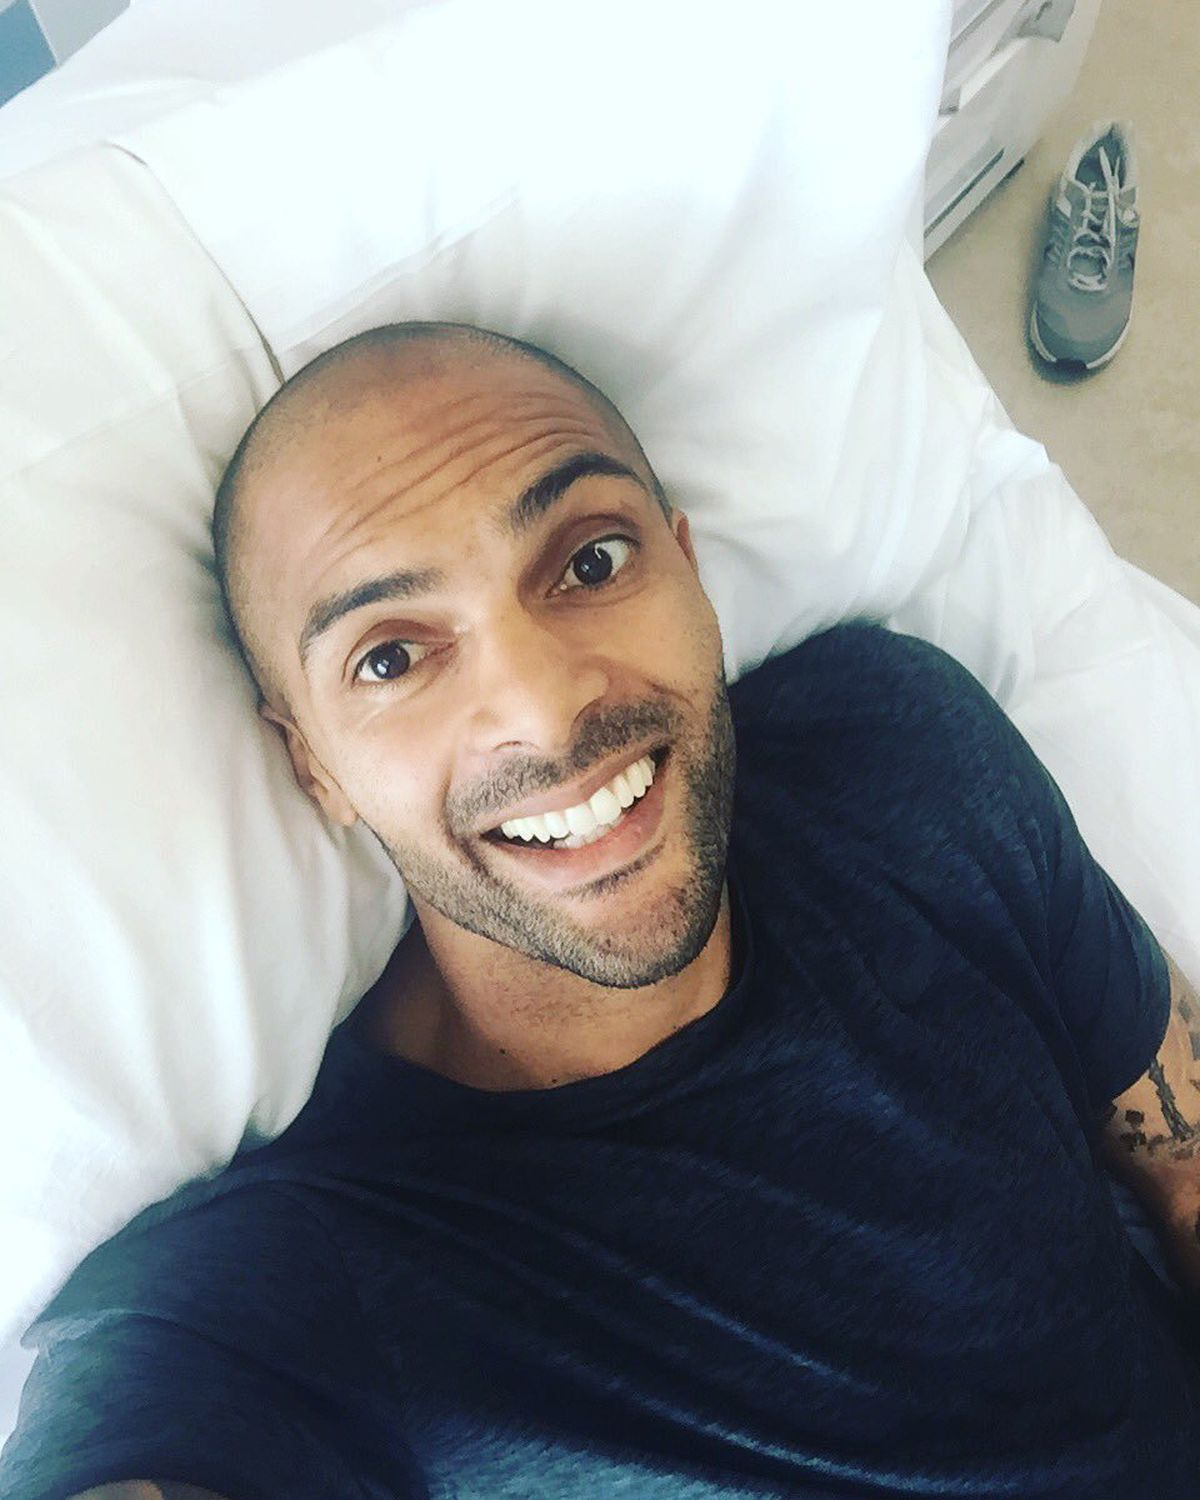 Ikeme takes a selfie in bed